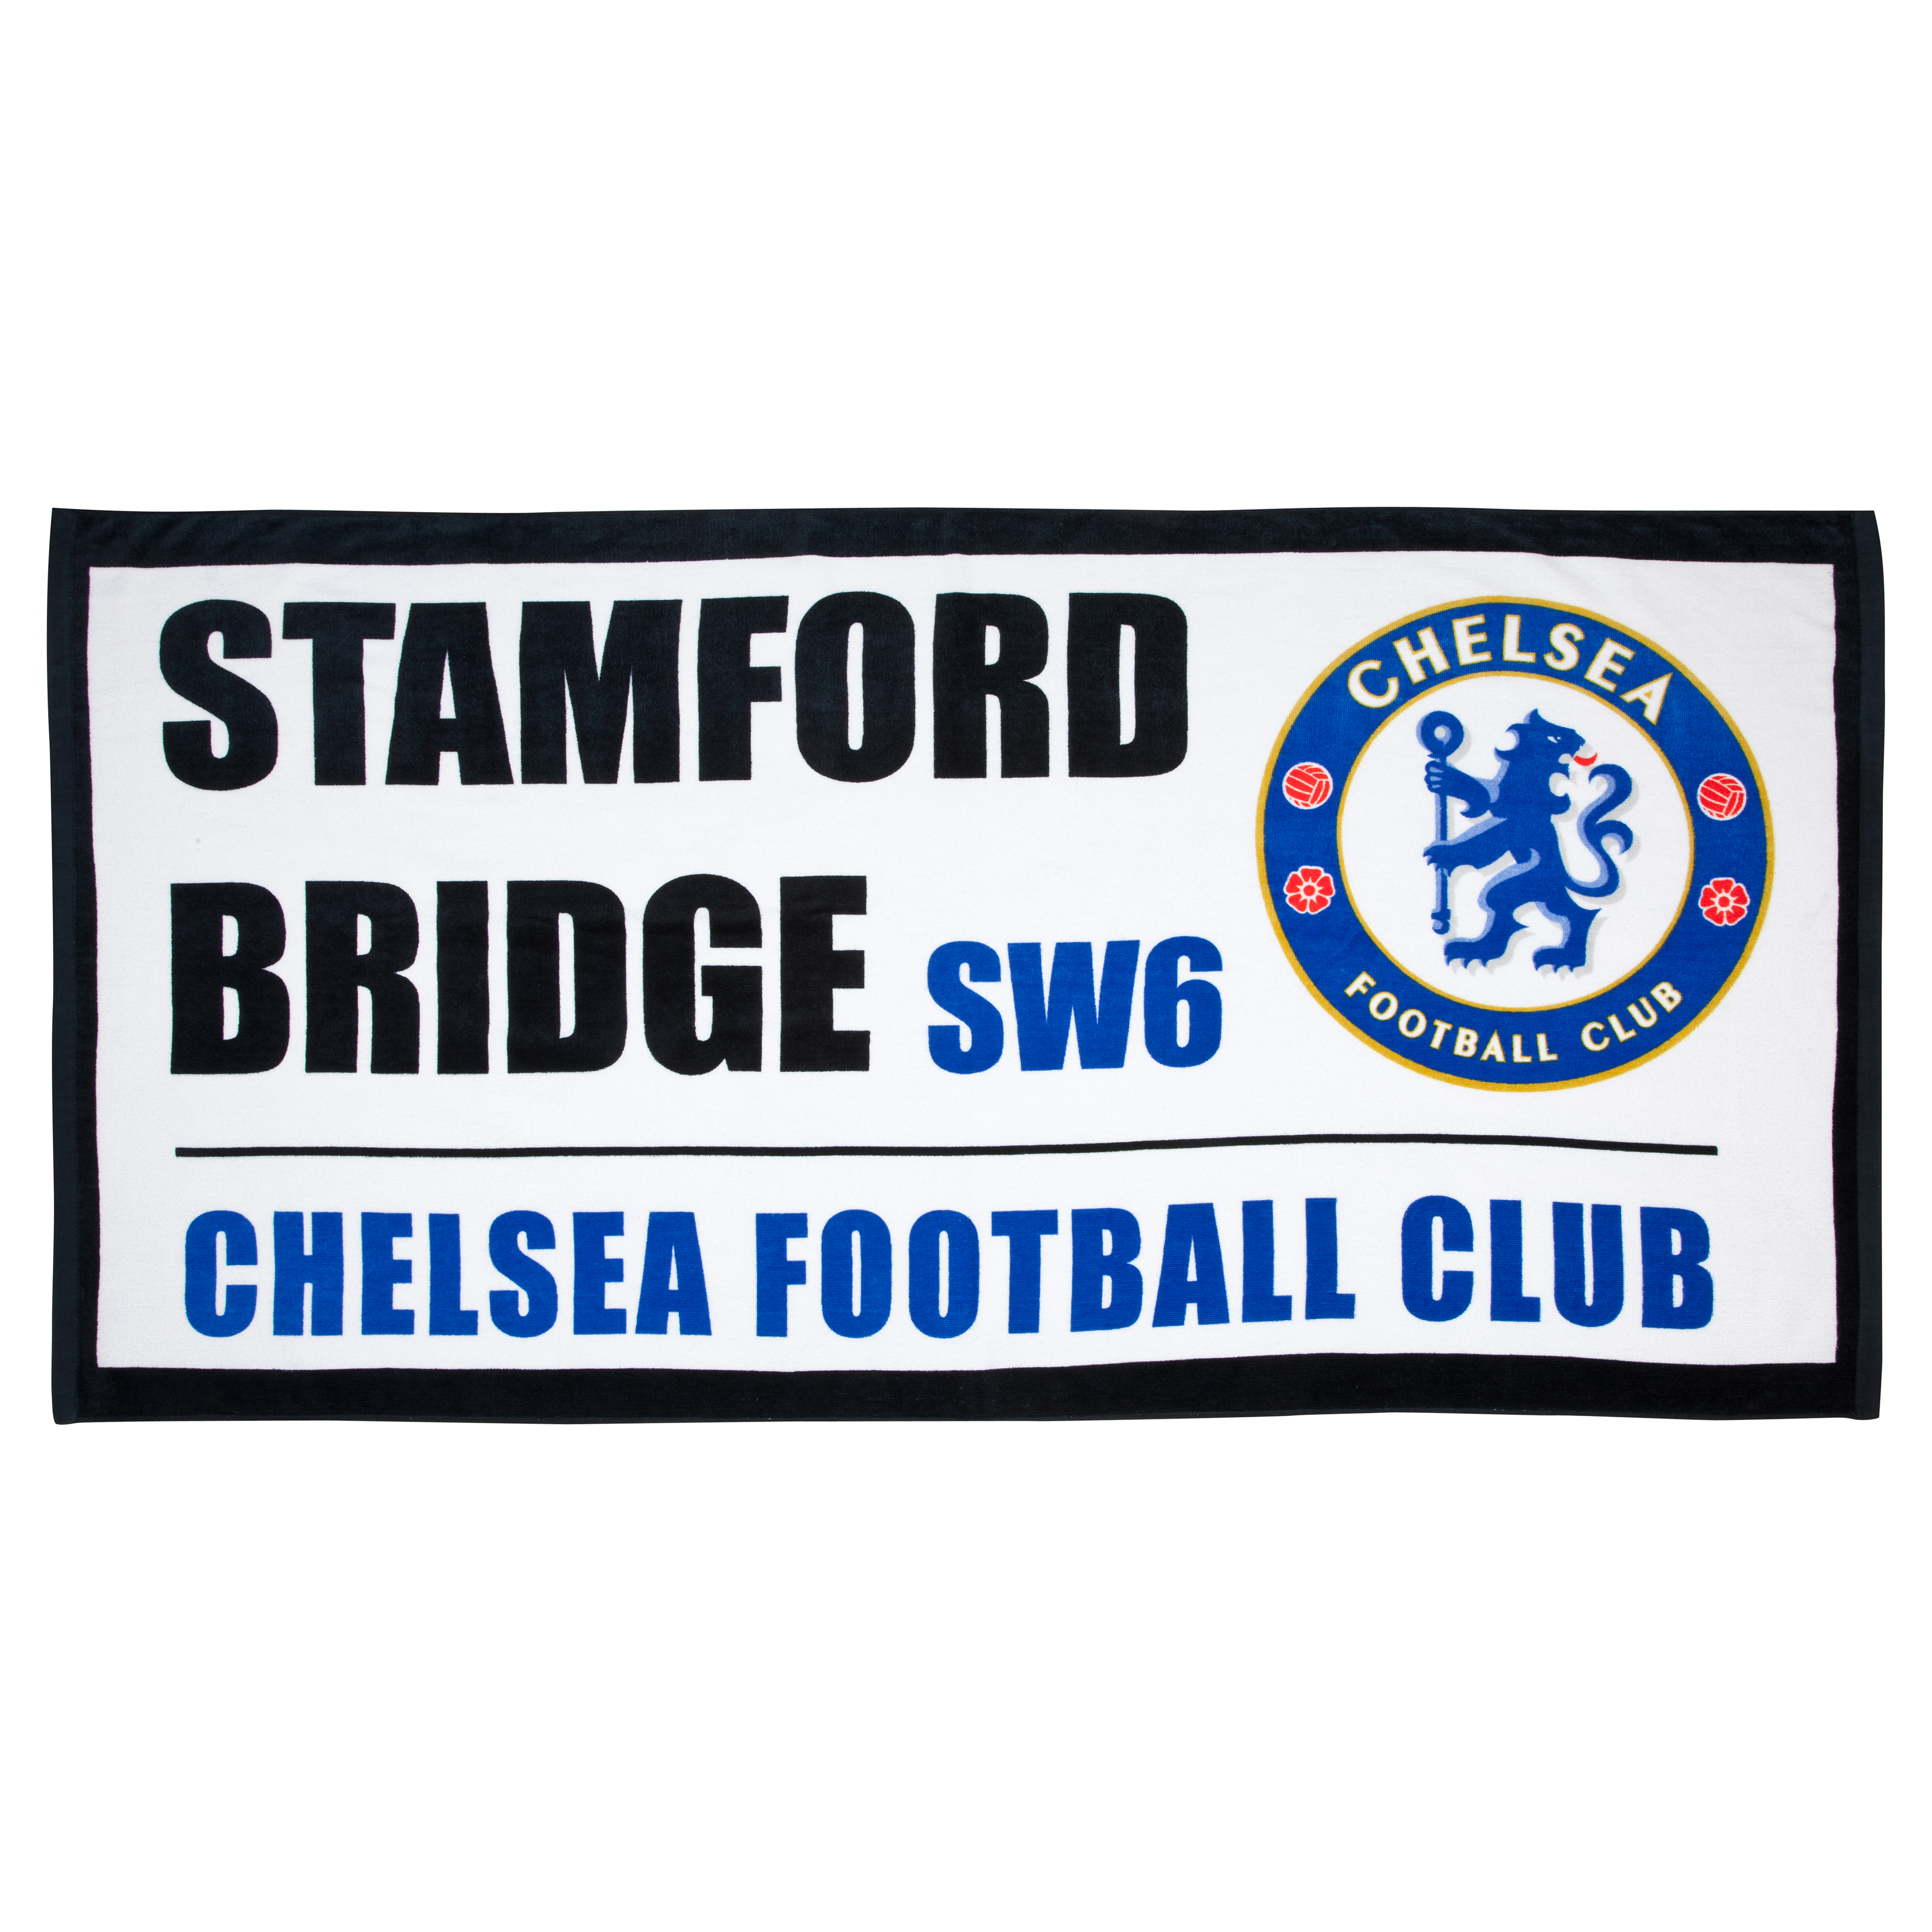 Chelsea Street Sign Towel